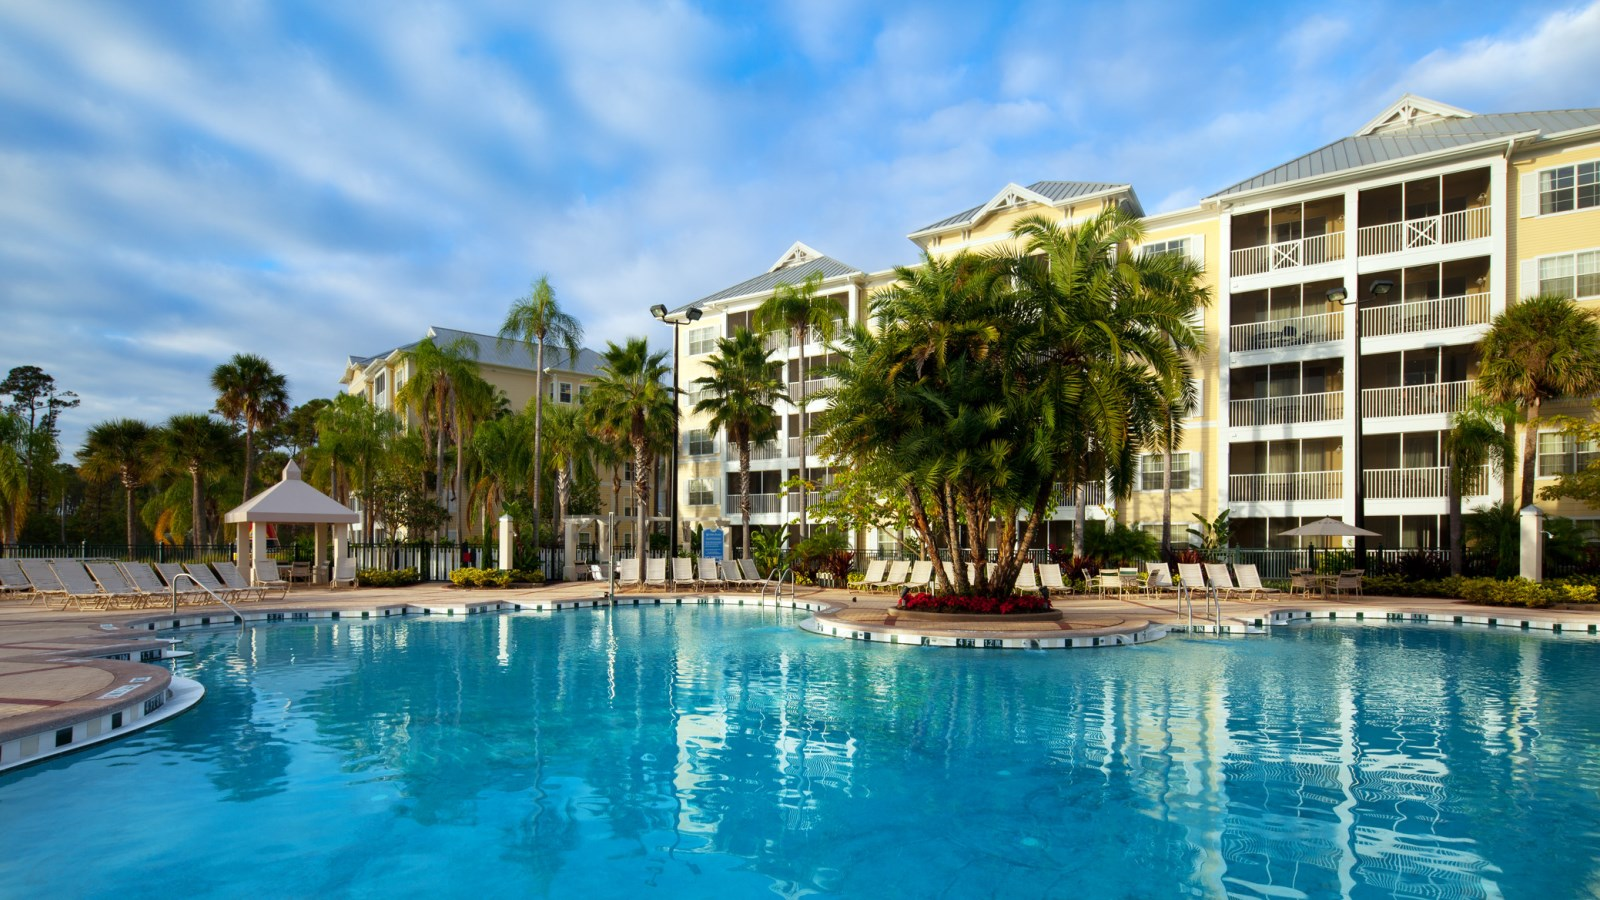 Key West Pool at Sheraton Vistana Villages Resort Villas, I-Drive/Orlando